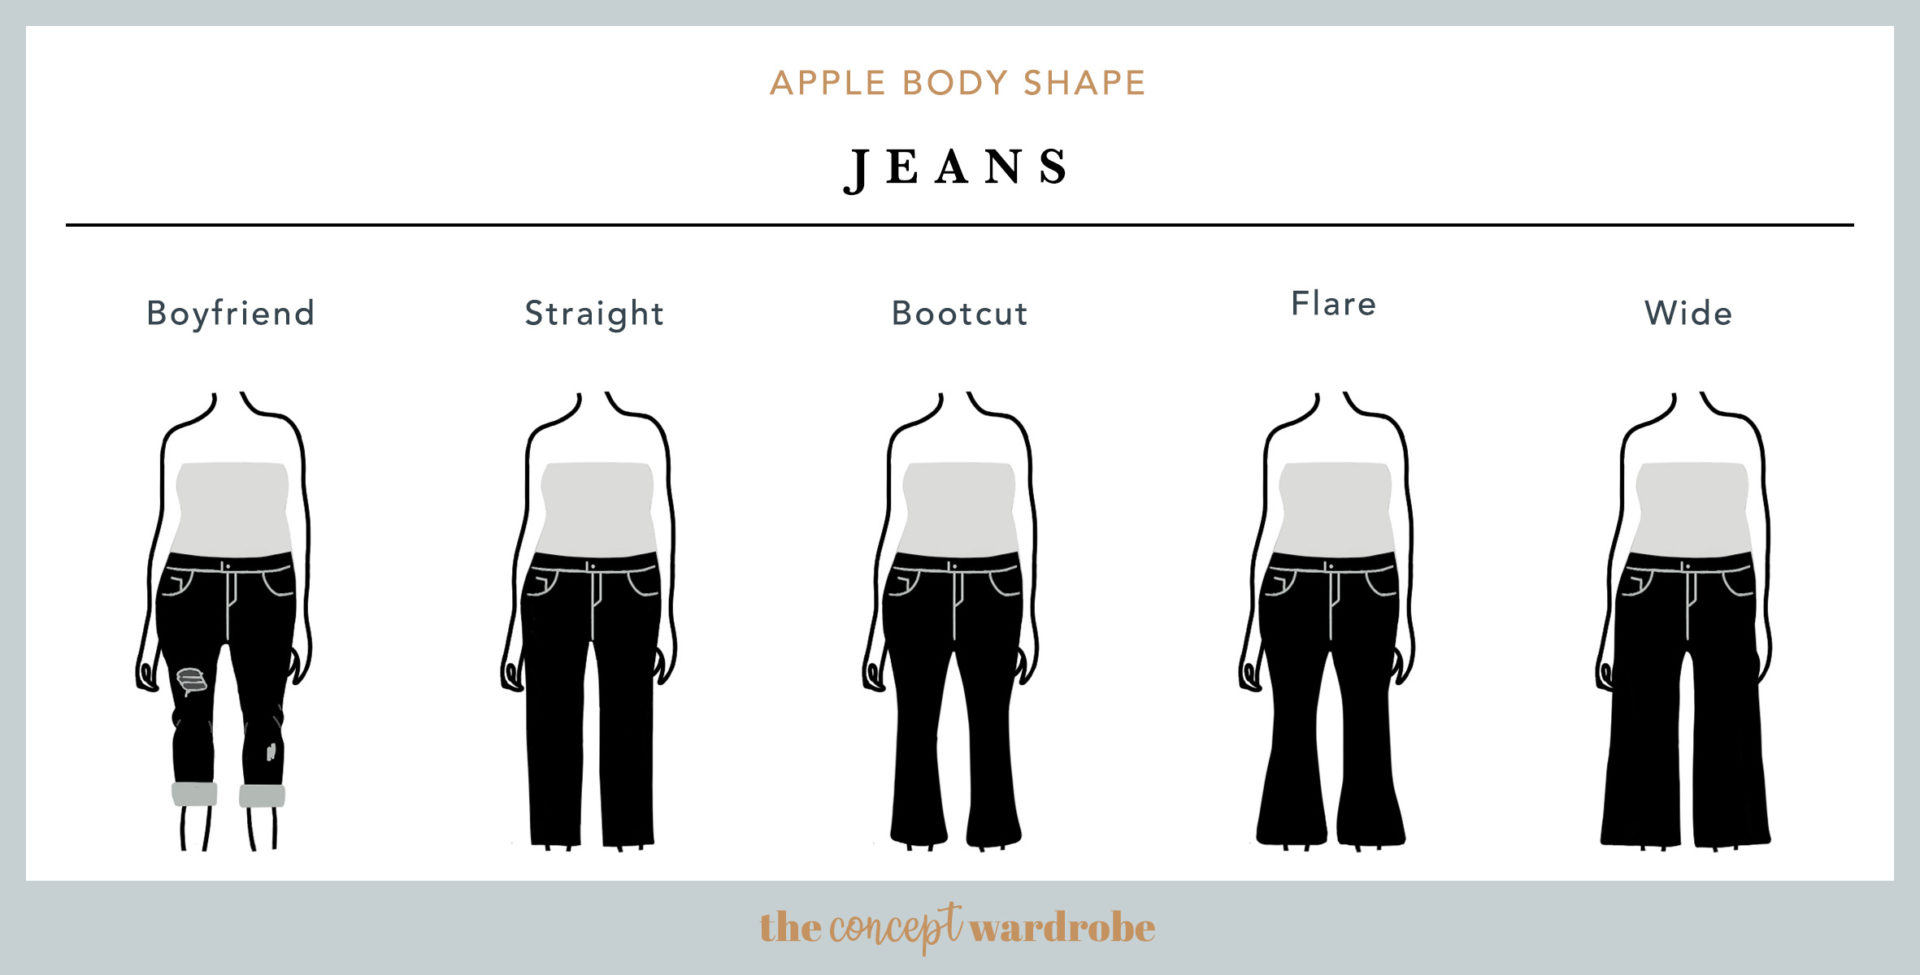 Apple Body Shape Jeans - the concept wardrobe